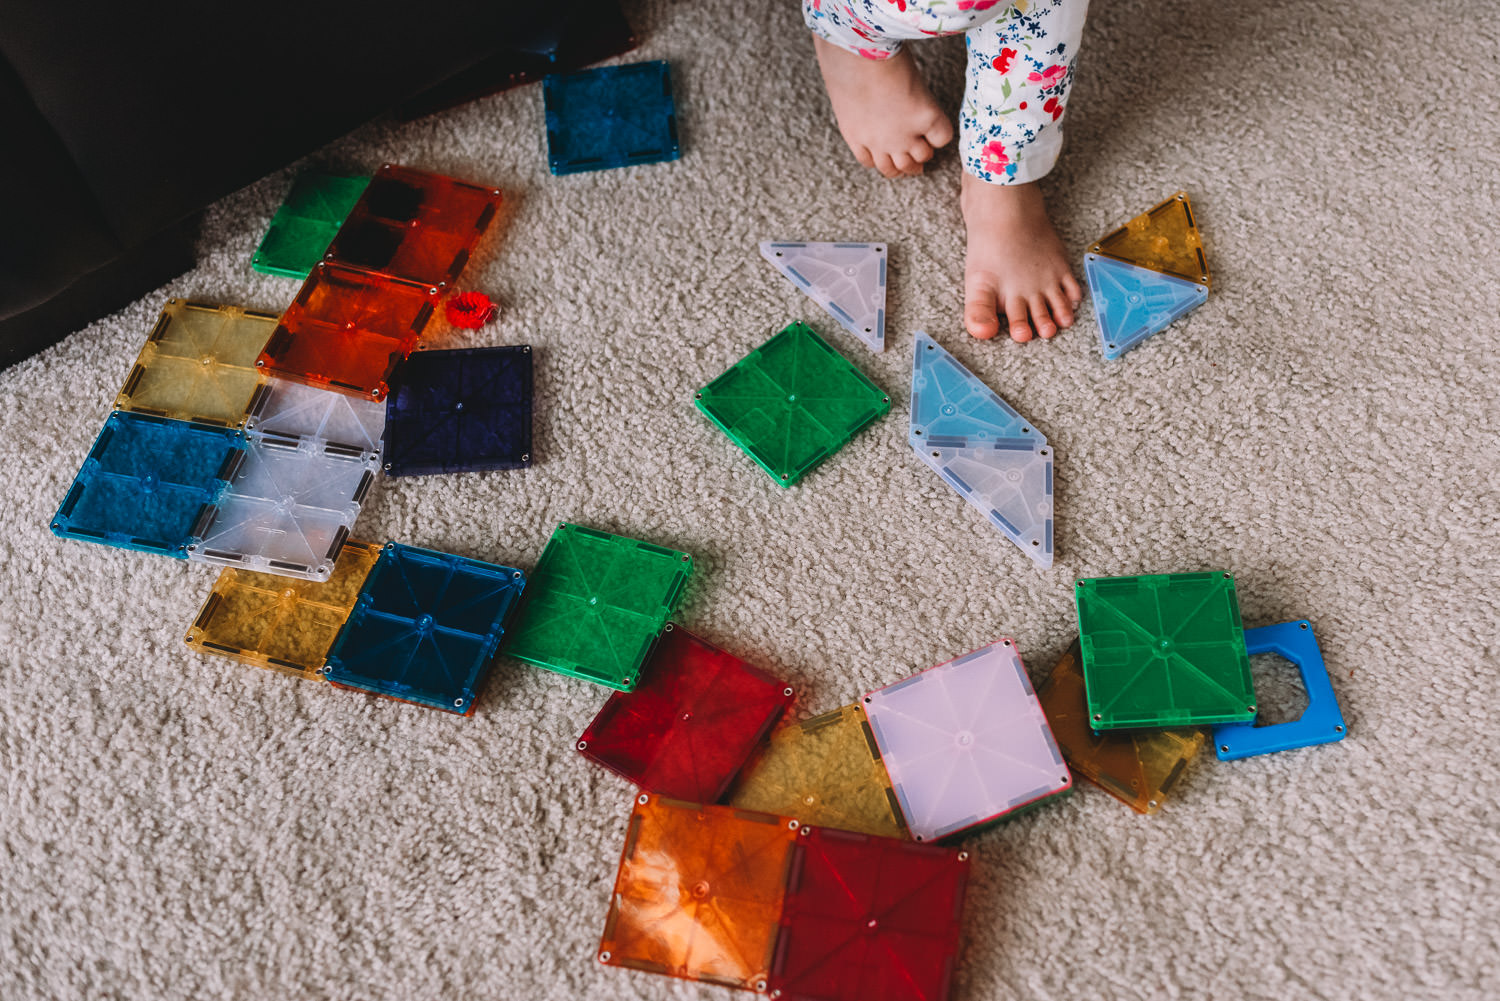 A child stands amidst a pile of Magna Tiles.